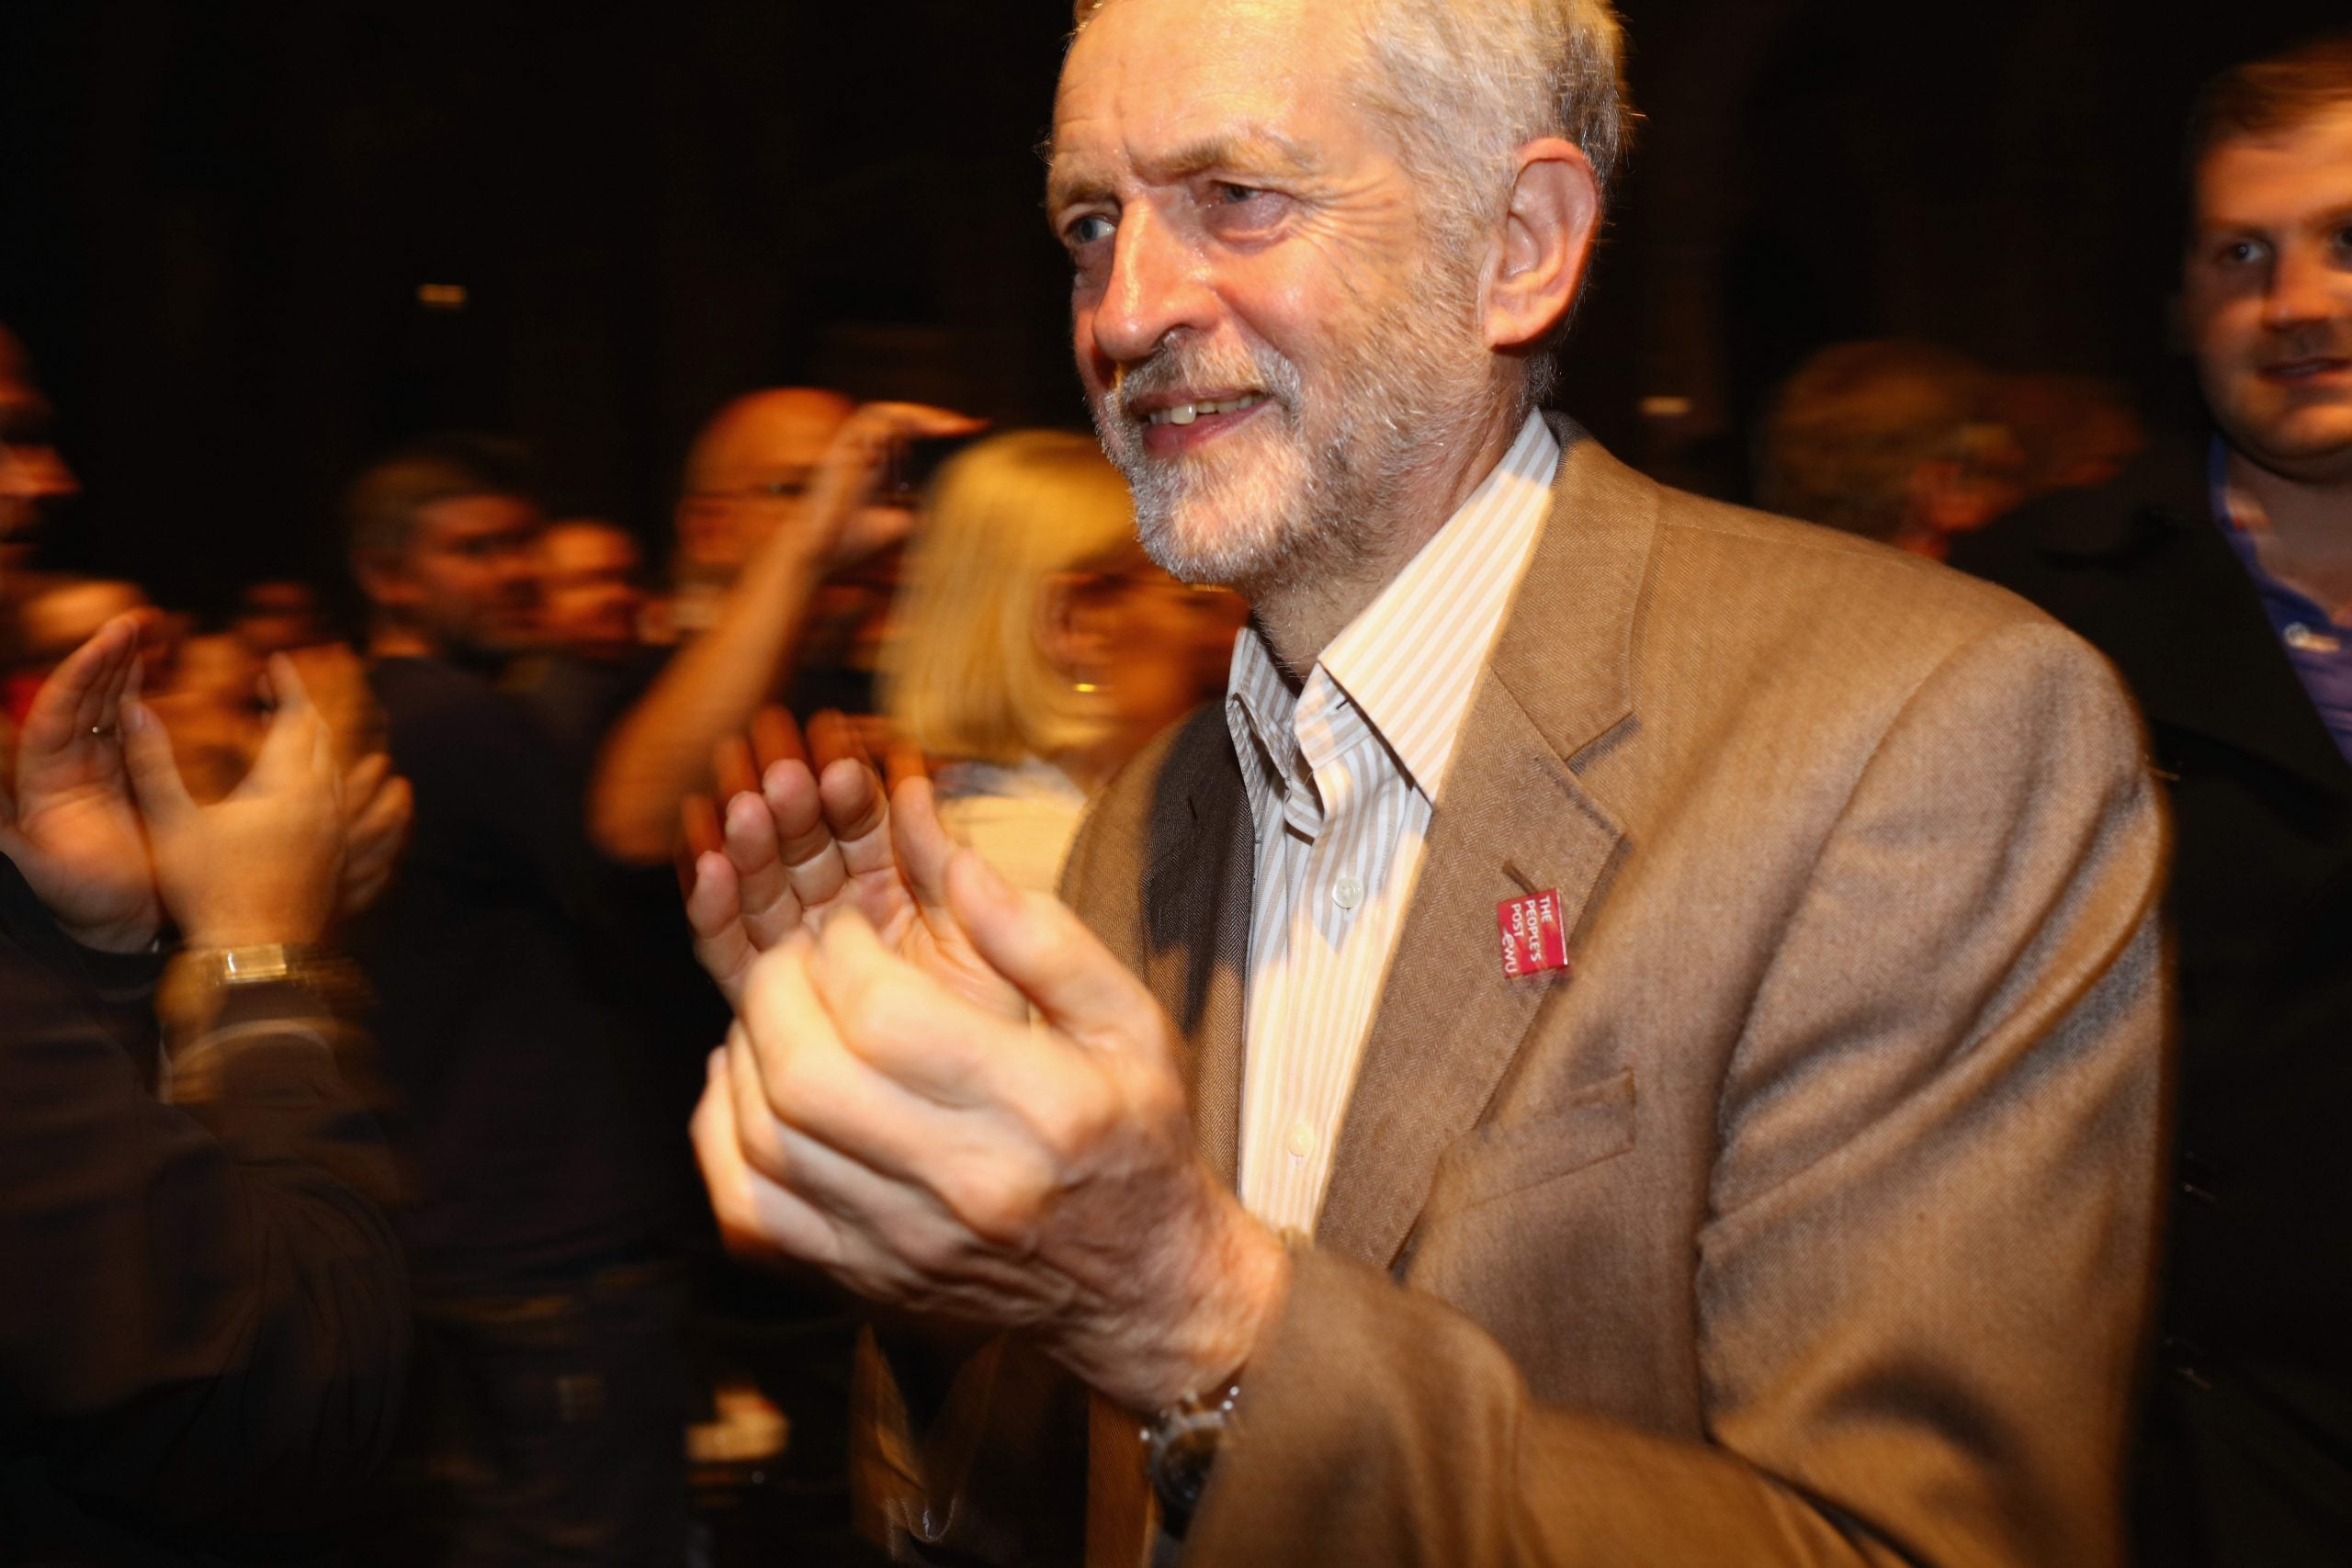 Jeremy Corbyn won because he offered something the others didn't: love